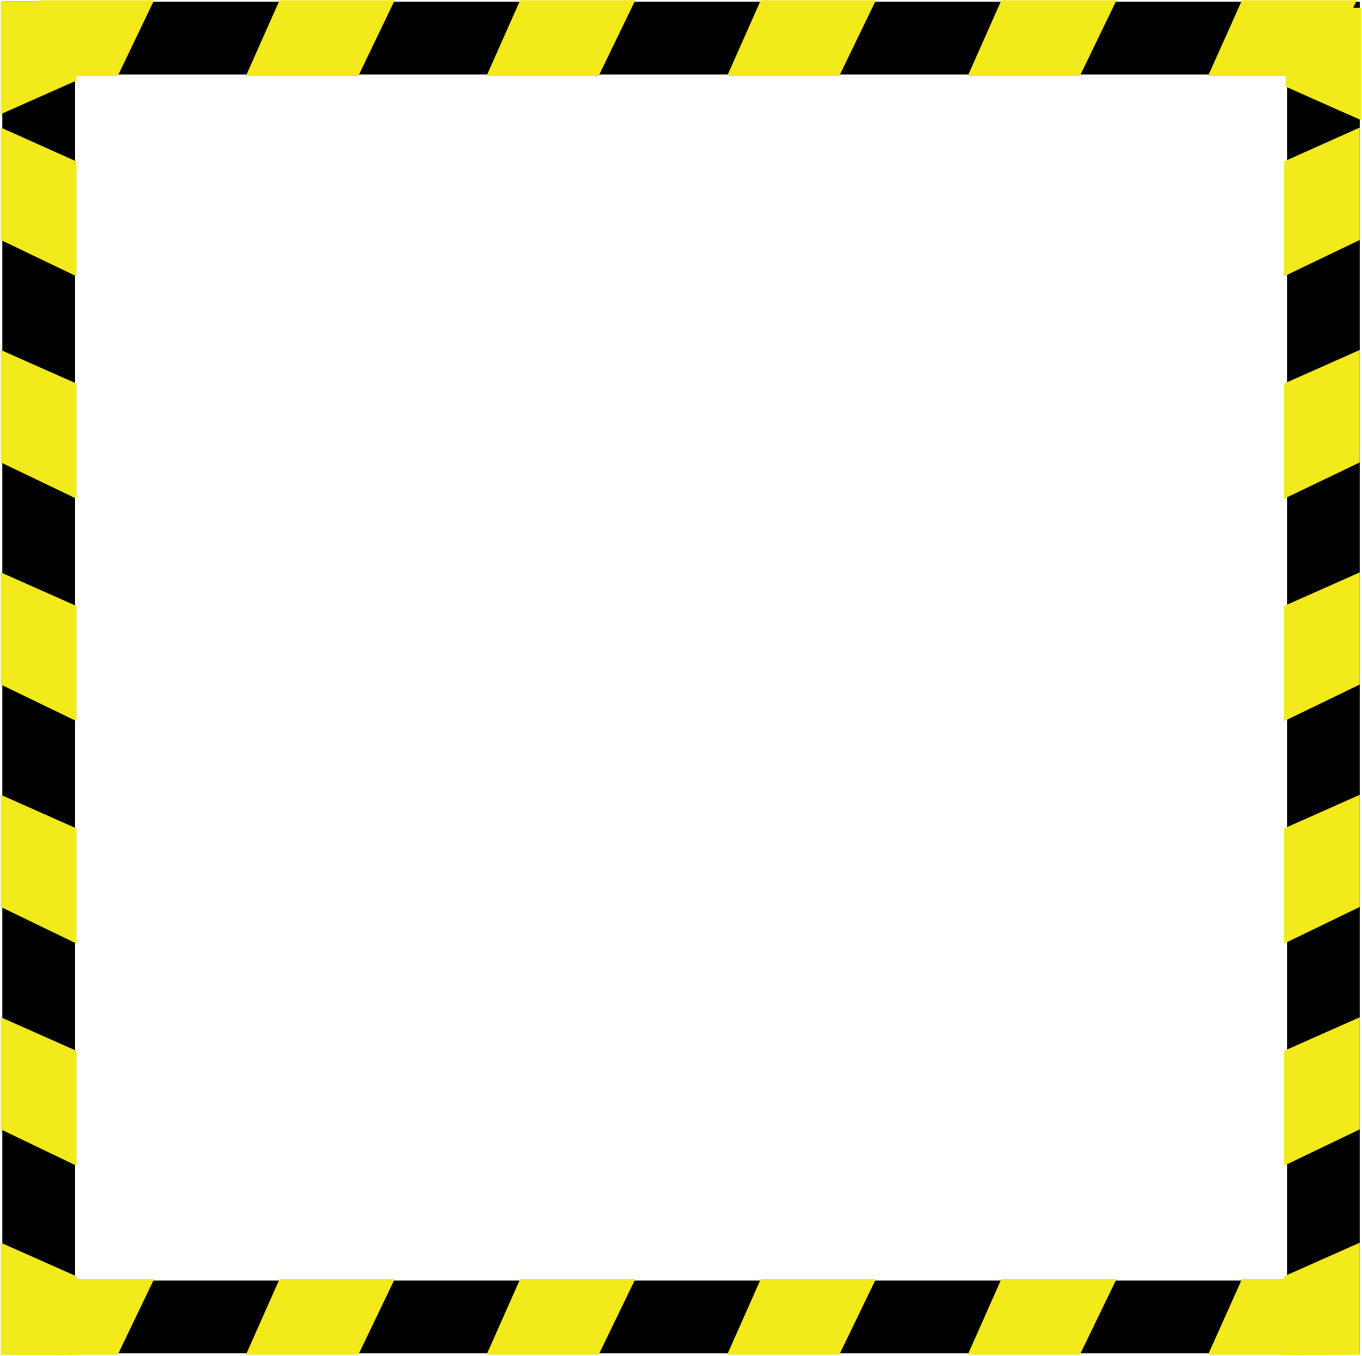 Frame Clipart Yellow Frame Yellow Transparent Free For